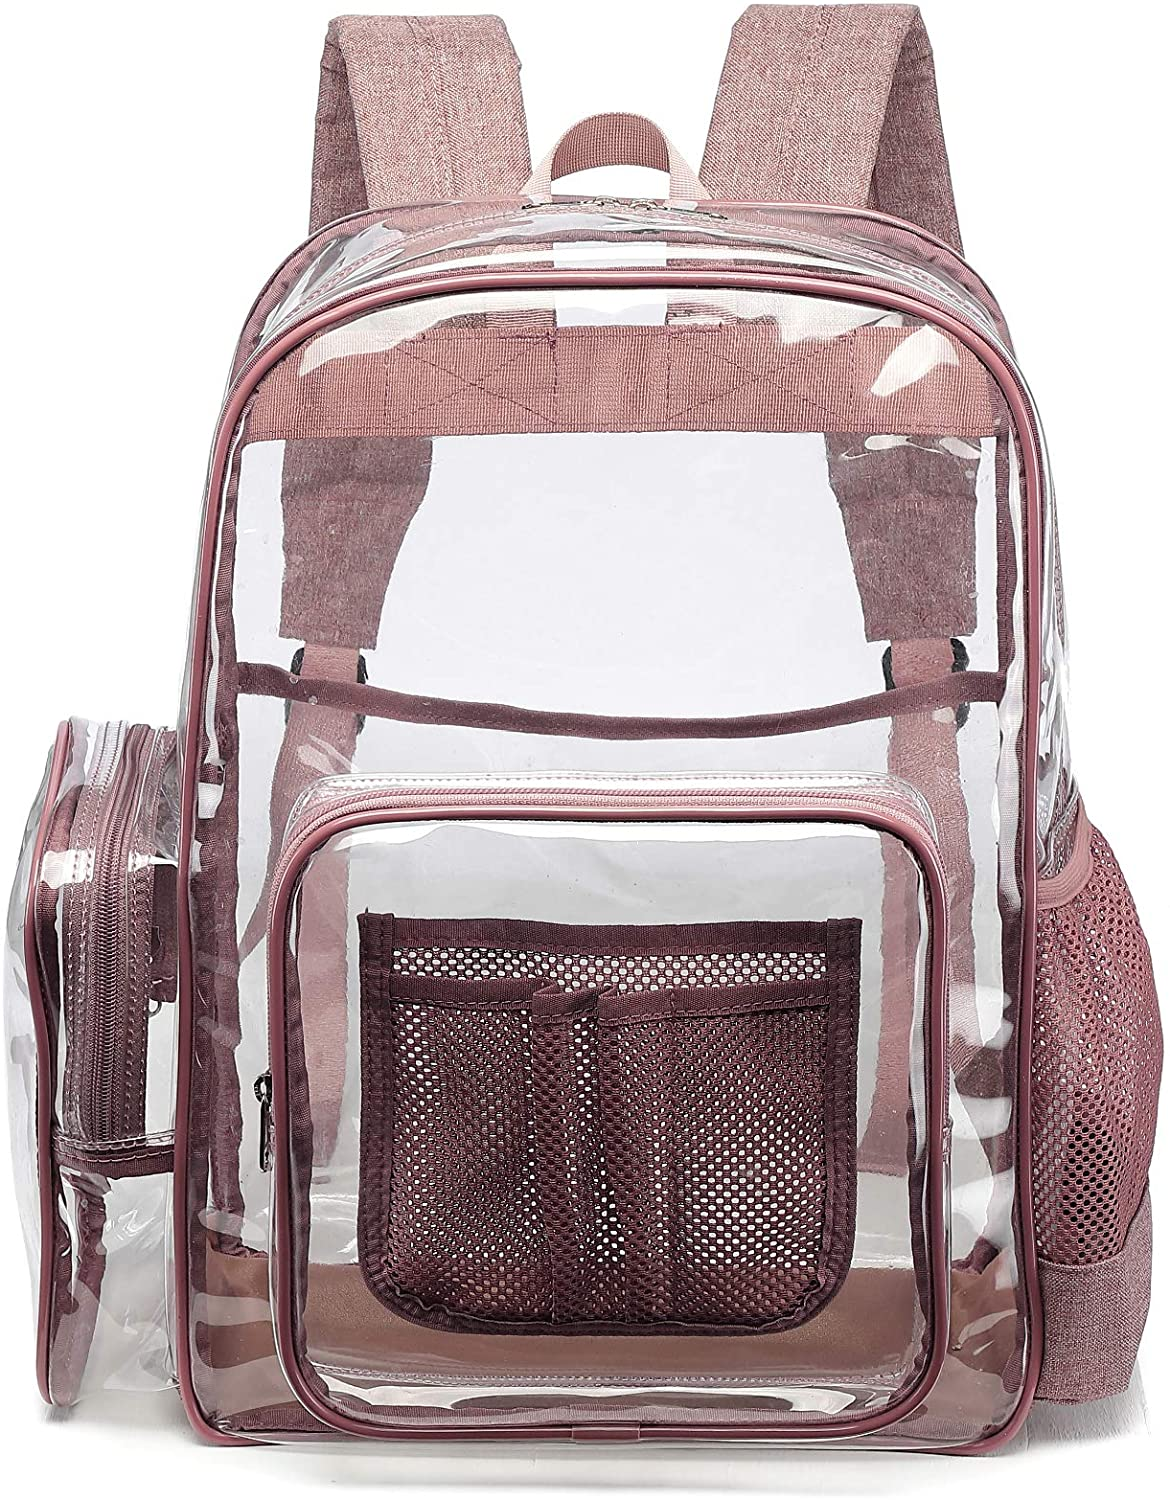 Clear Backpack, F-color Heavy Duty PVC Transparent Clear Bag for Stadium, School